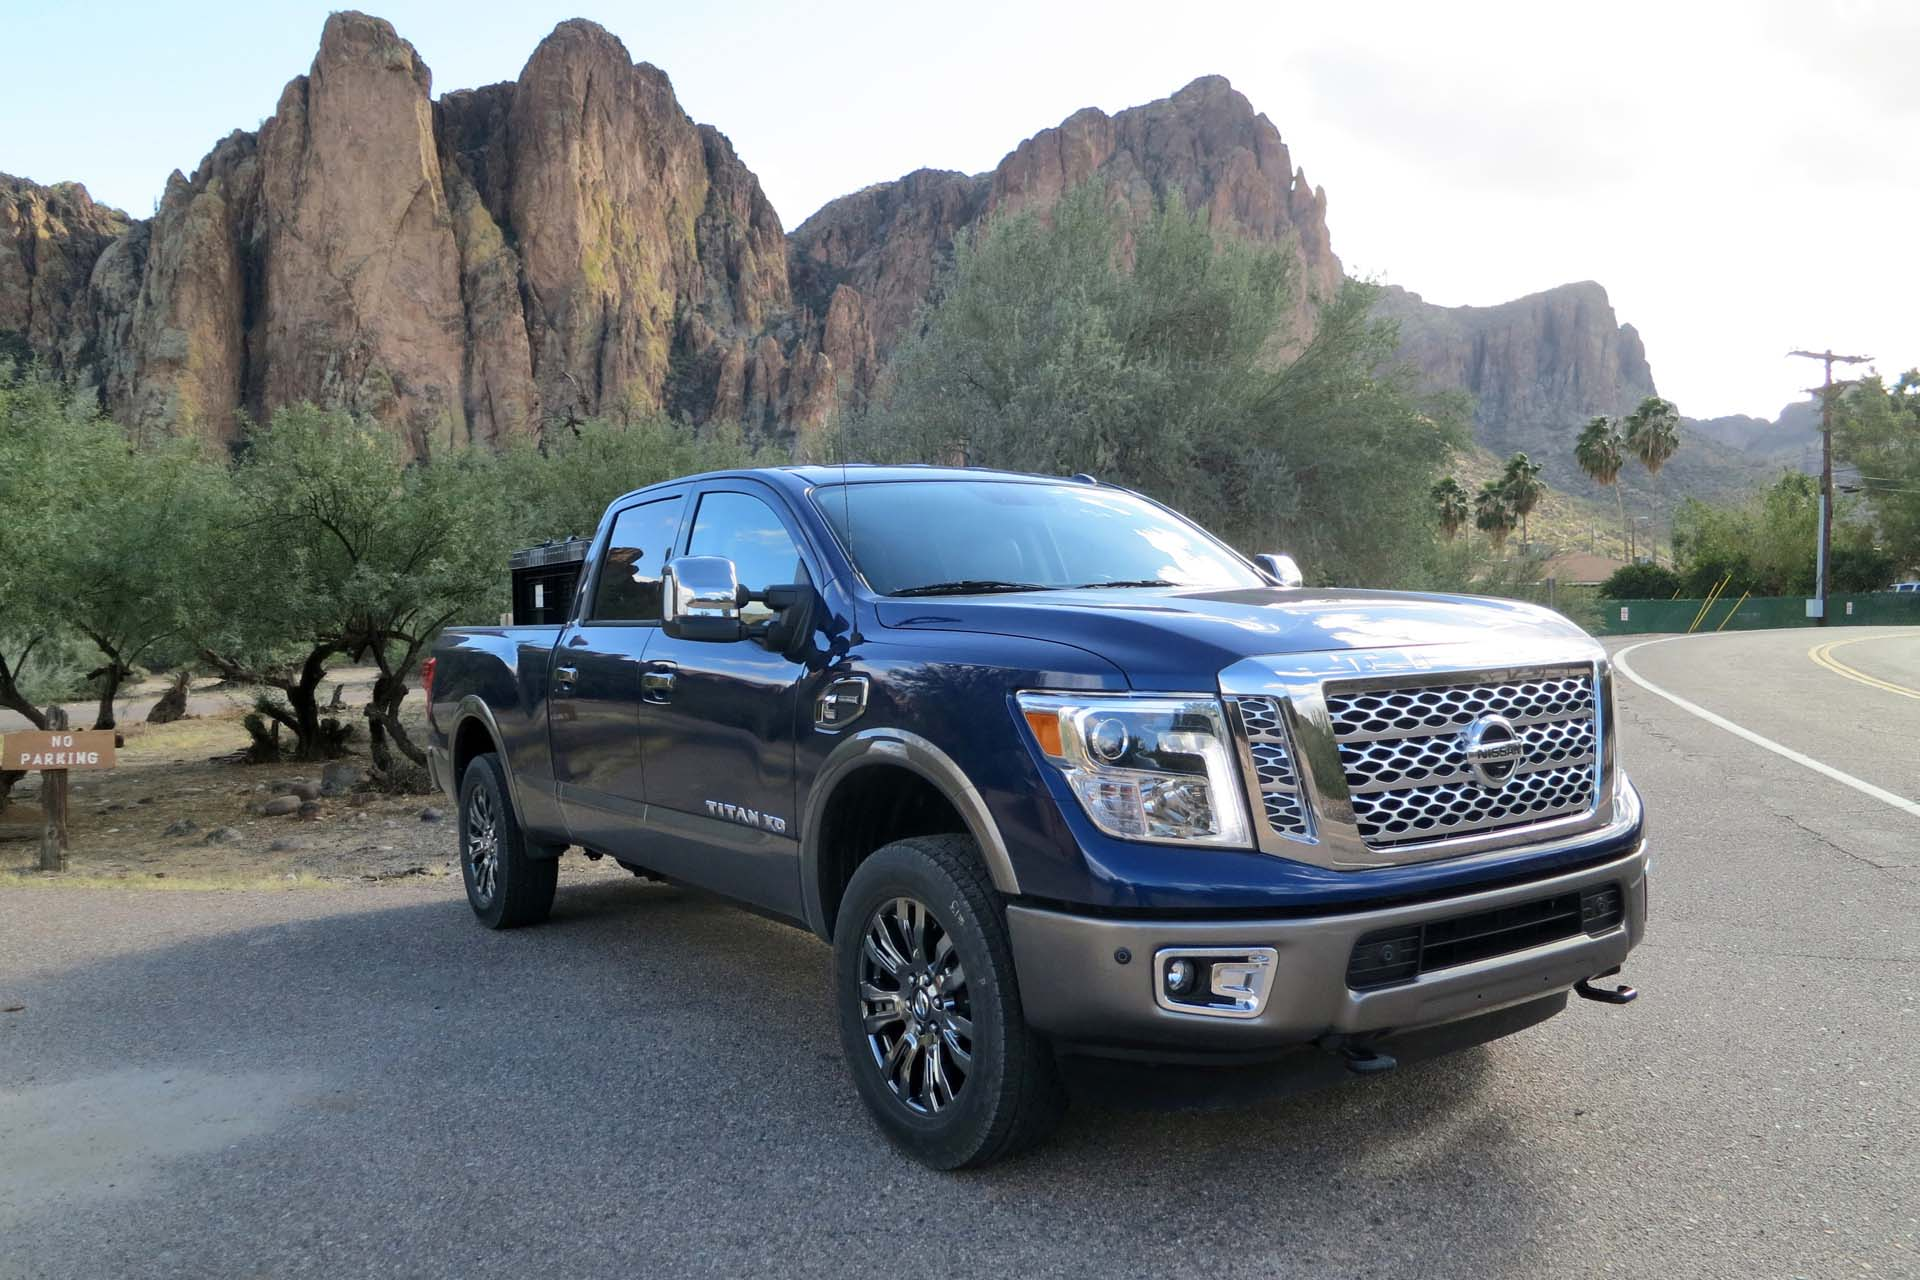 The new Nissan Titan XD is the first of its kind: a light duty, diesel-powered pickup built to handle heavy duty tasks. It's the perfect compromise for the buyer who wants the strength and durability of a serious hauler, but doesn't want to give up the comfortable ride and maneuverability of a regular size truck. </p> <p>Here are ten things you need to know about the 2016 Nissan Titan XD: